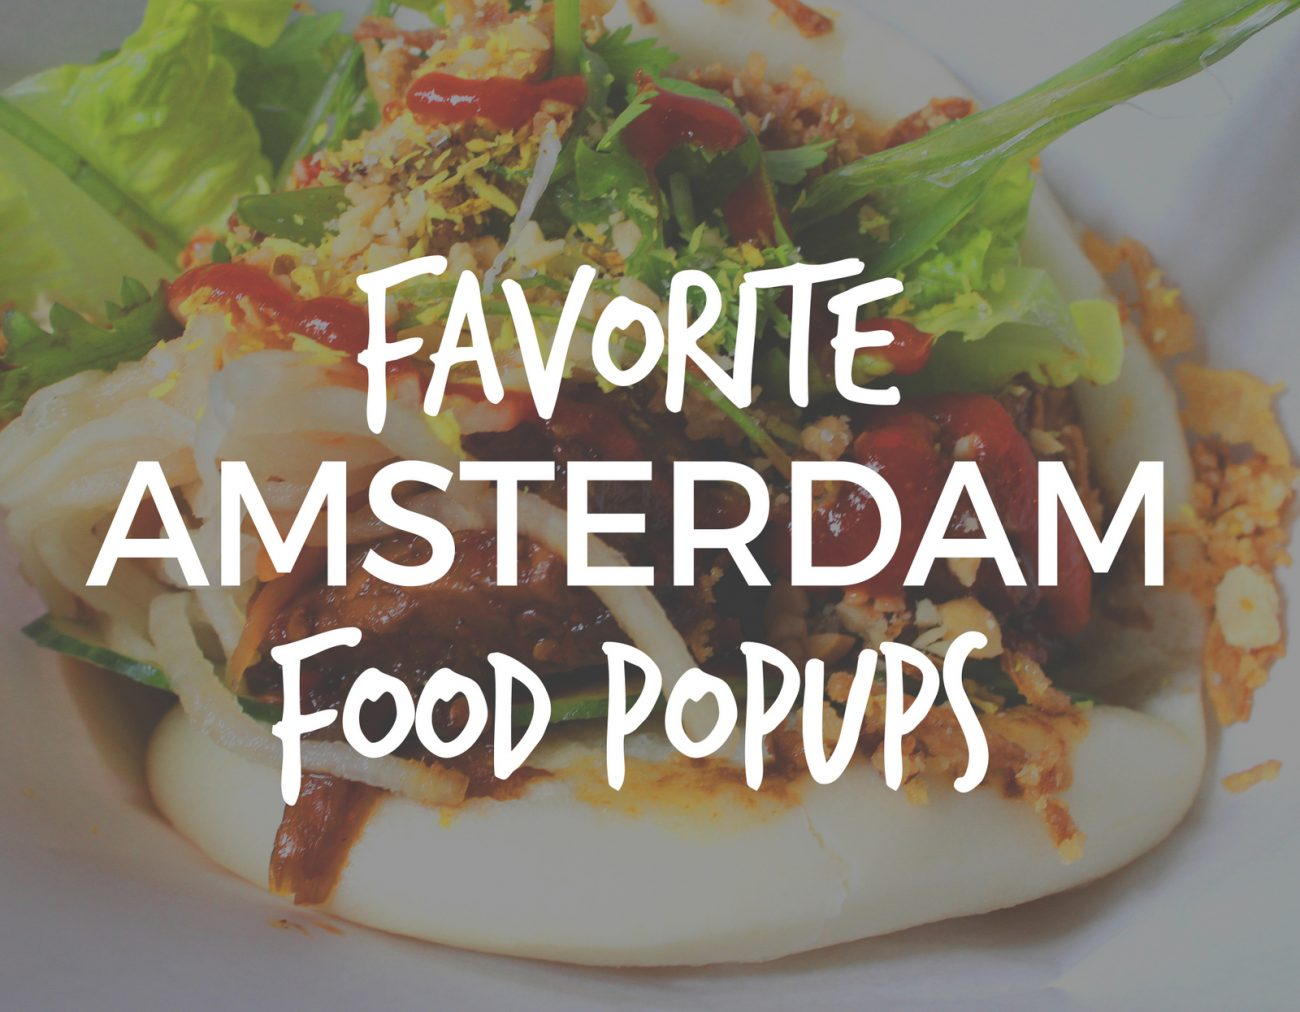 With so many good food pop ups in Amsterdam lately, it's not easy to choose just a few. But here they are! Our favorite Amsterdam Food Pop Ups.